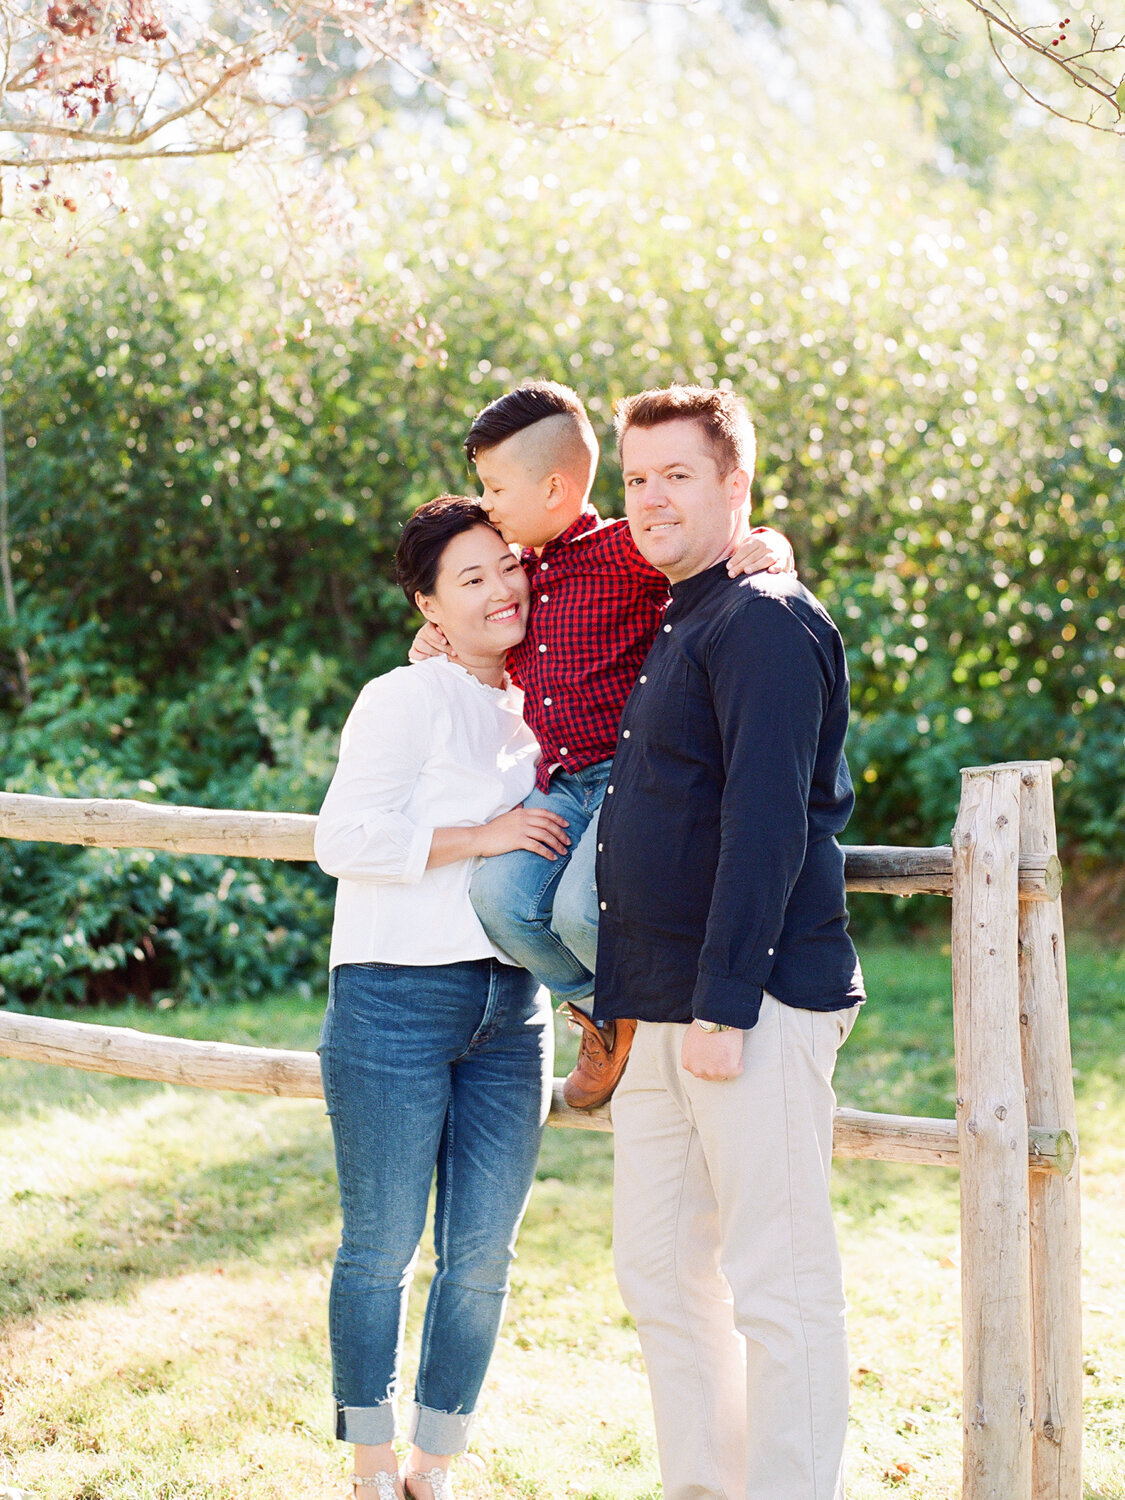 Jacqueline Anne Photography - Family Photographer in Halifax-4